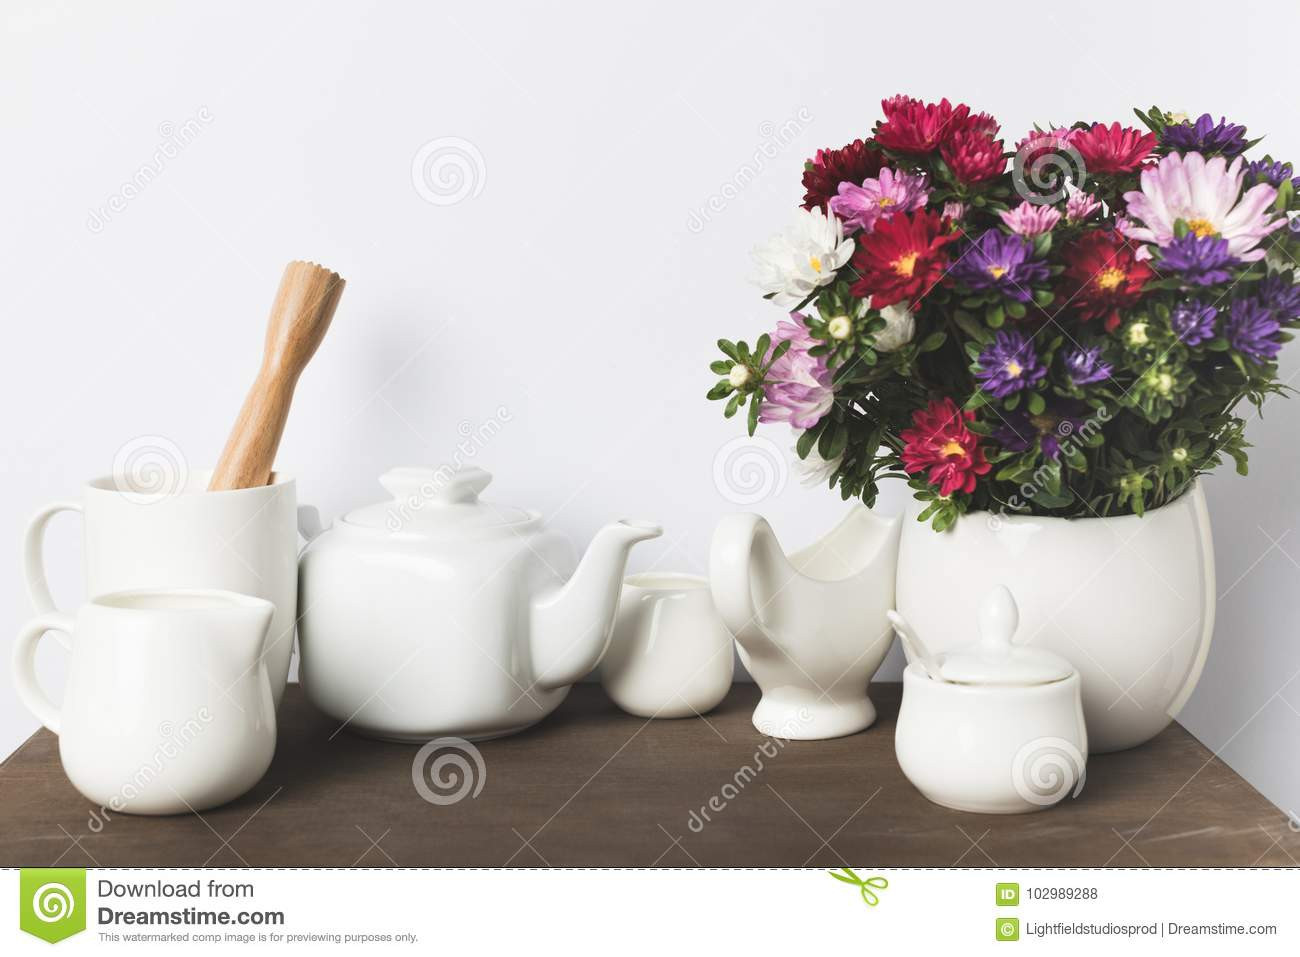 clay vases wholesale of wooden flower vase stock fake flower arrangements awful h vases vase pertaining to wooden flower vase pics kitchen utensils and flowers stock image of domestic table of wooden flower